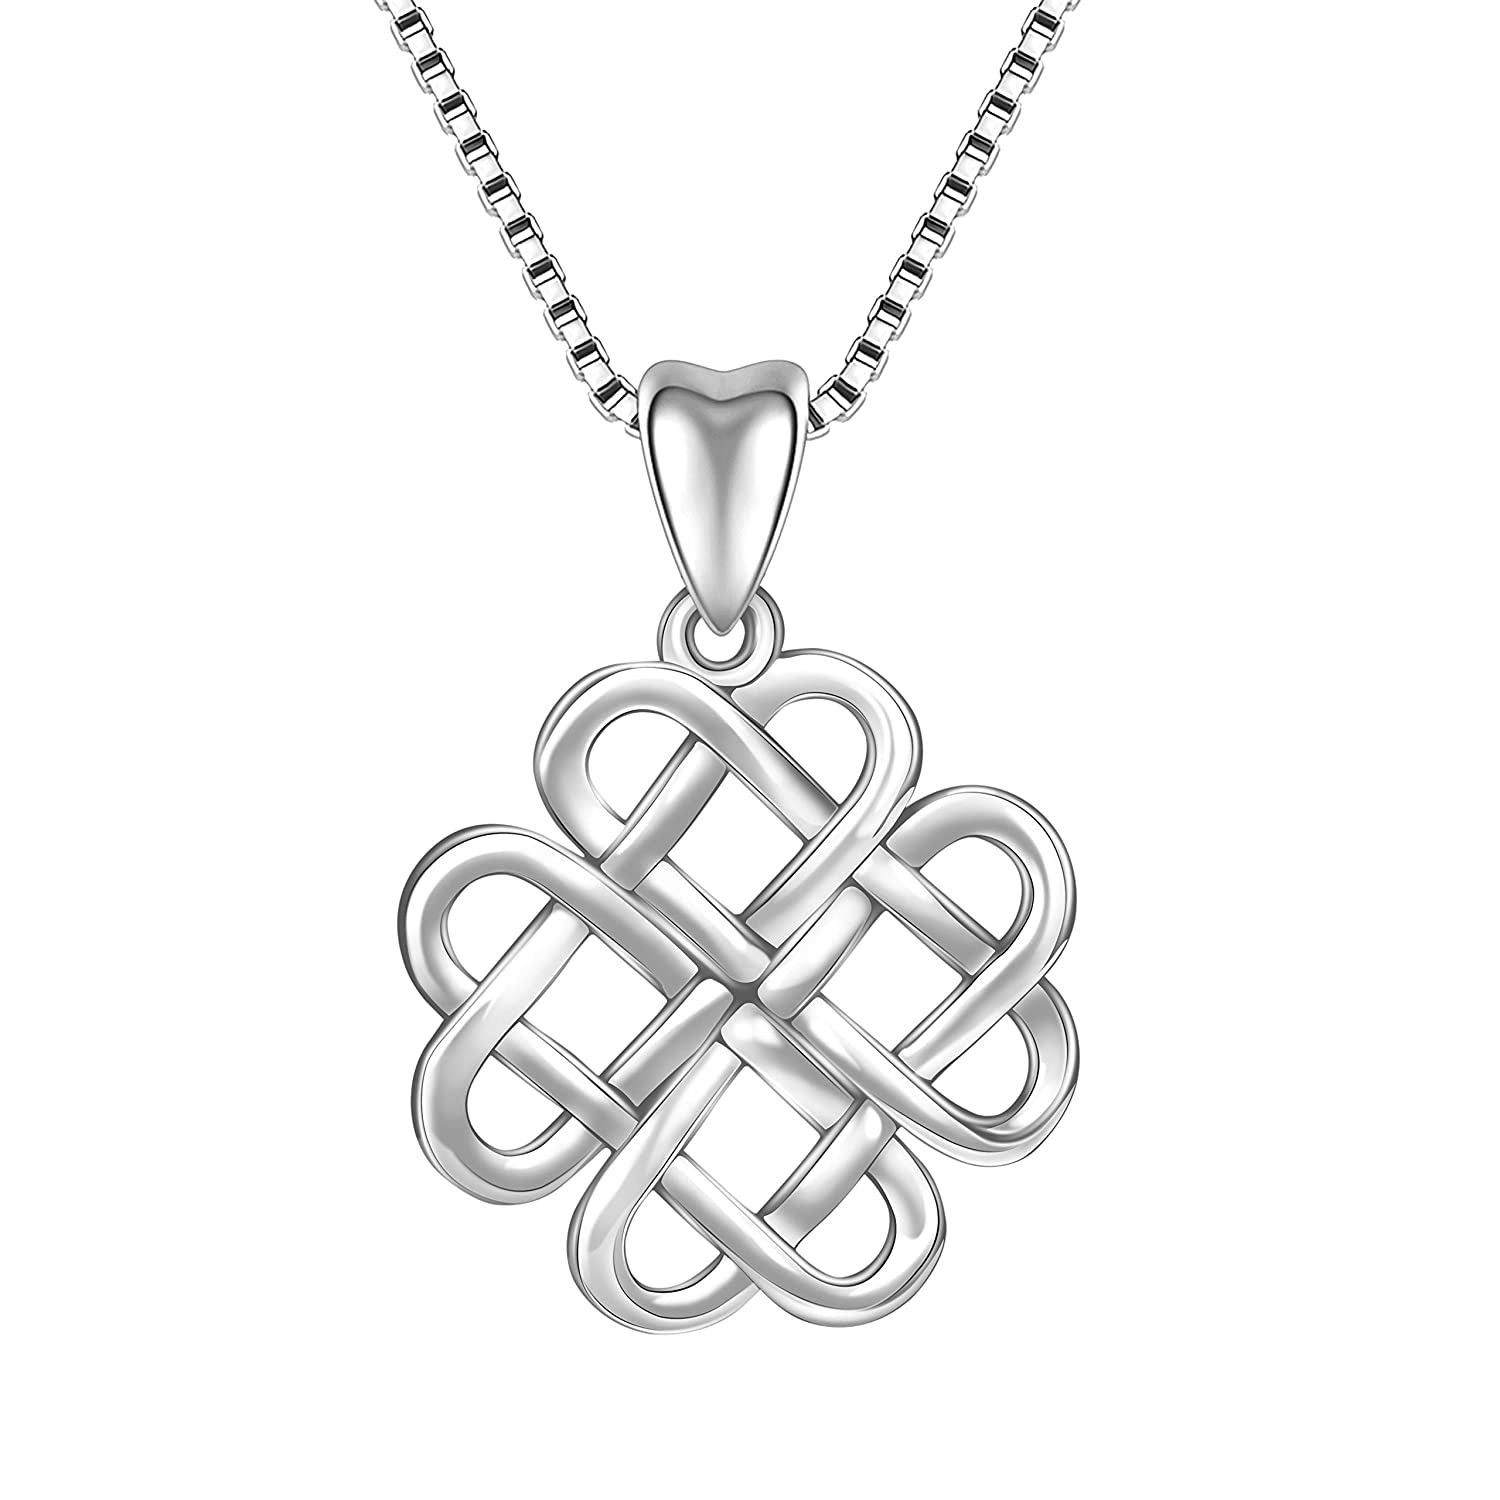 Angemiel 925 Sterling Silver CZ Good Luck Celtic Knot Cross Vintage Pendant Necklace Womens Box Chain 18 Sterling Silver Pendants ACX175